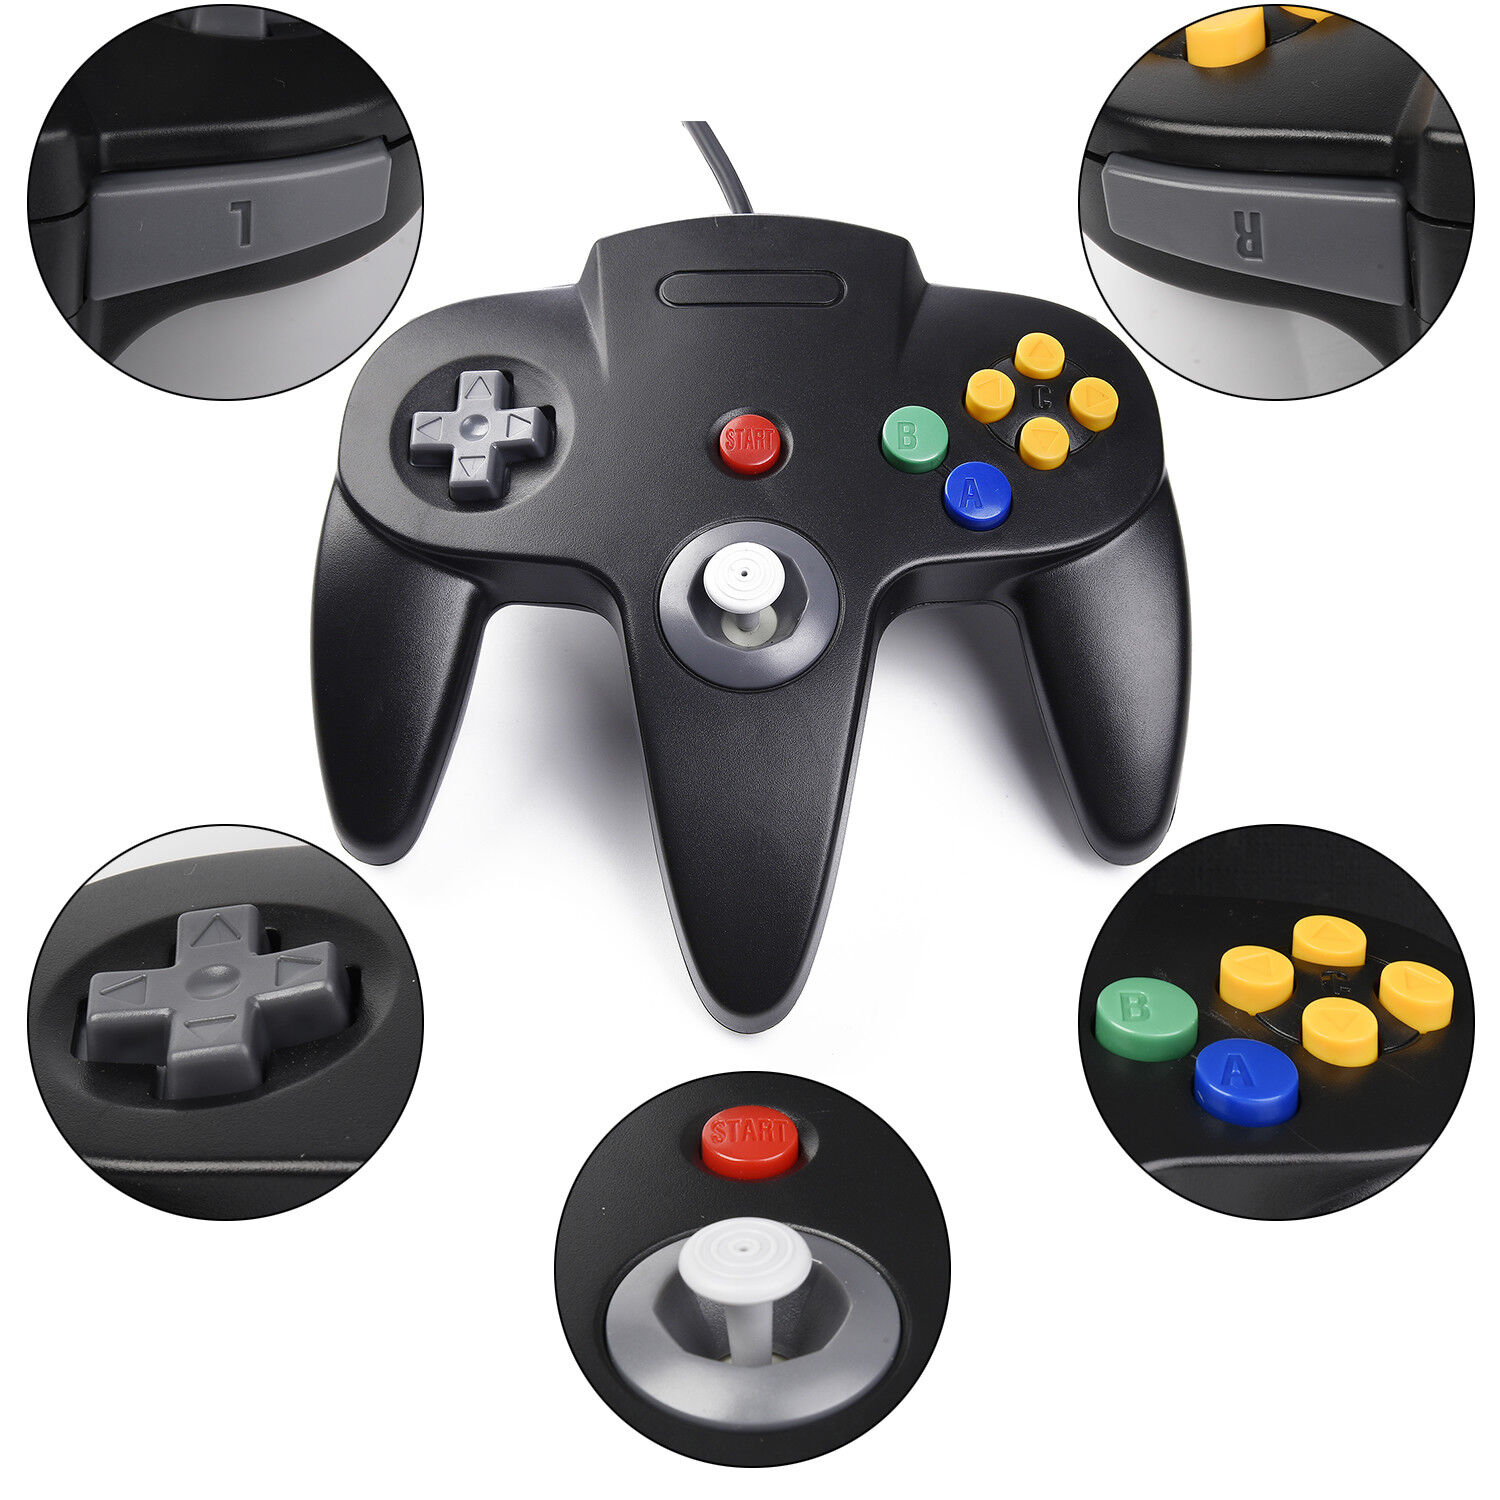 Controller Joystick Gamepad Controllers for Classic N64 Console Video Games 1x2x 7